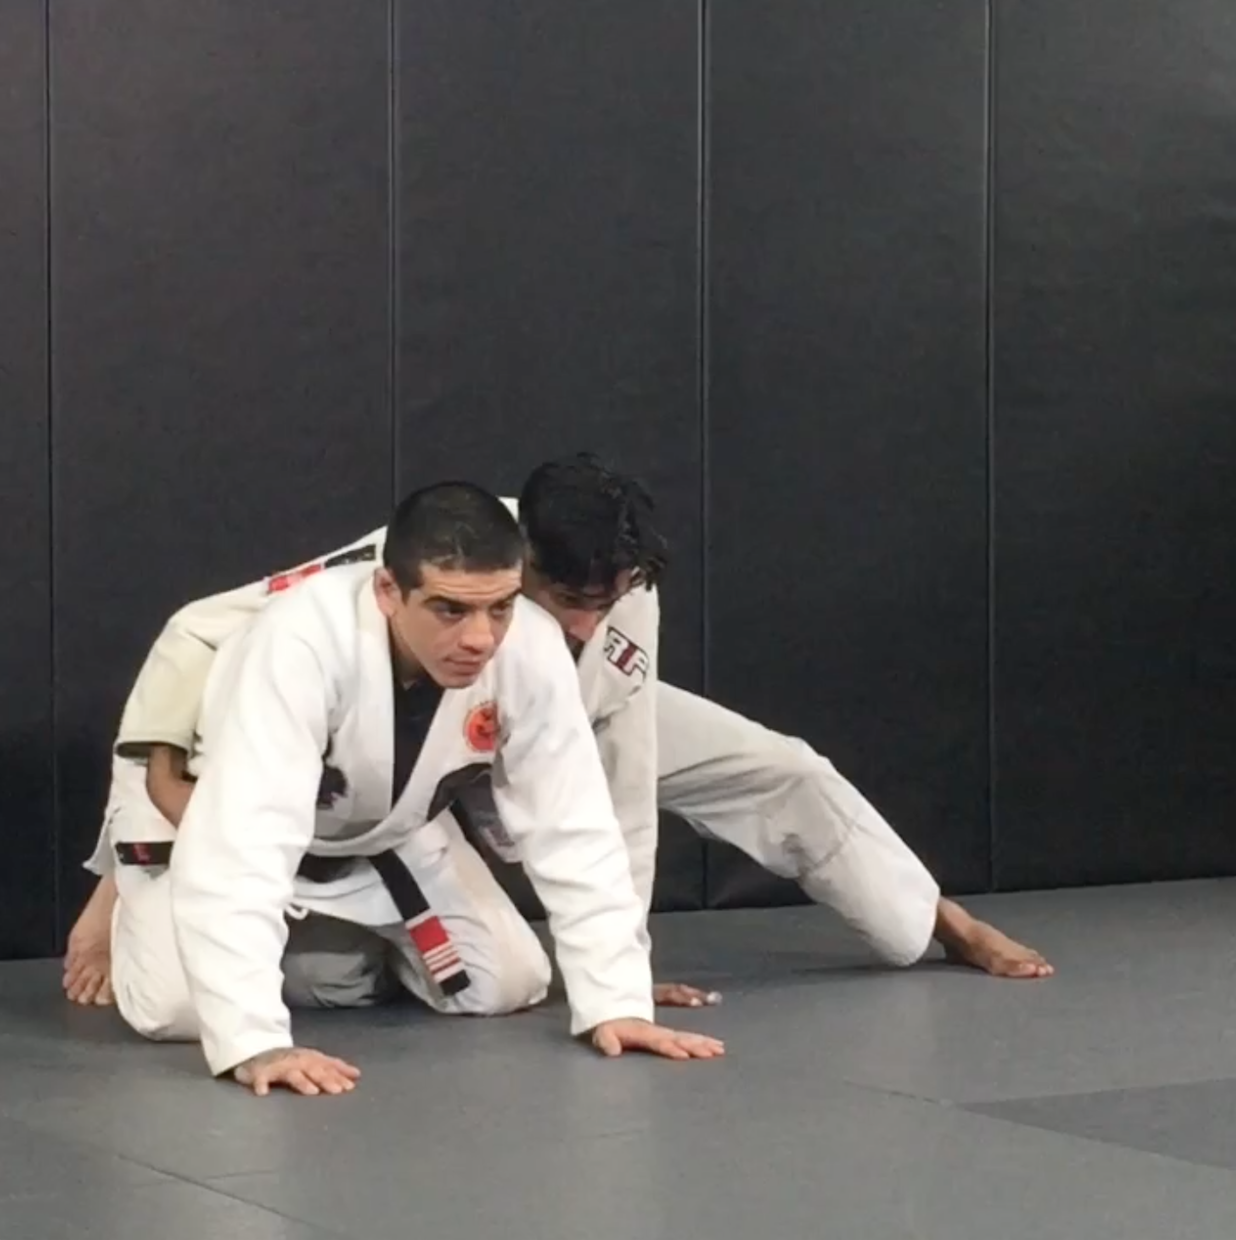 Carlos Sapão is guest teaching Brazilian JiuJitsu at Andersons Martial Arts Academy